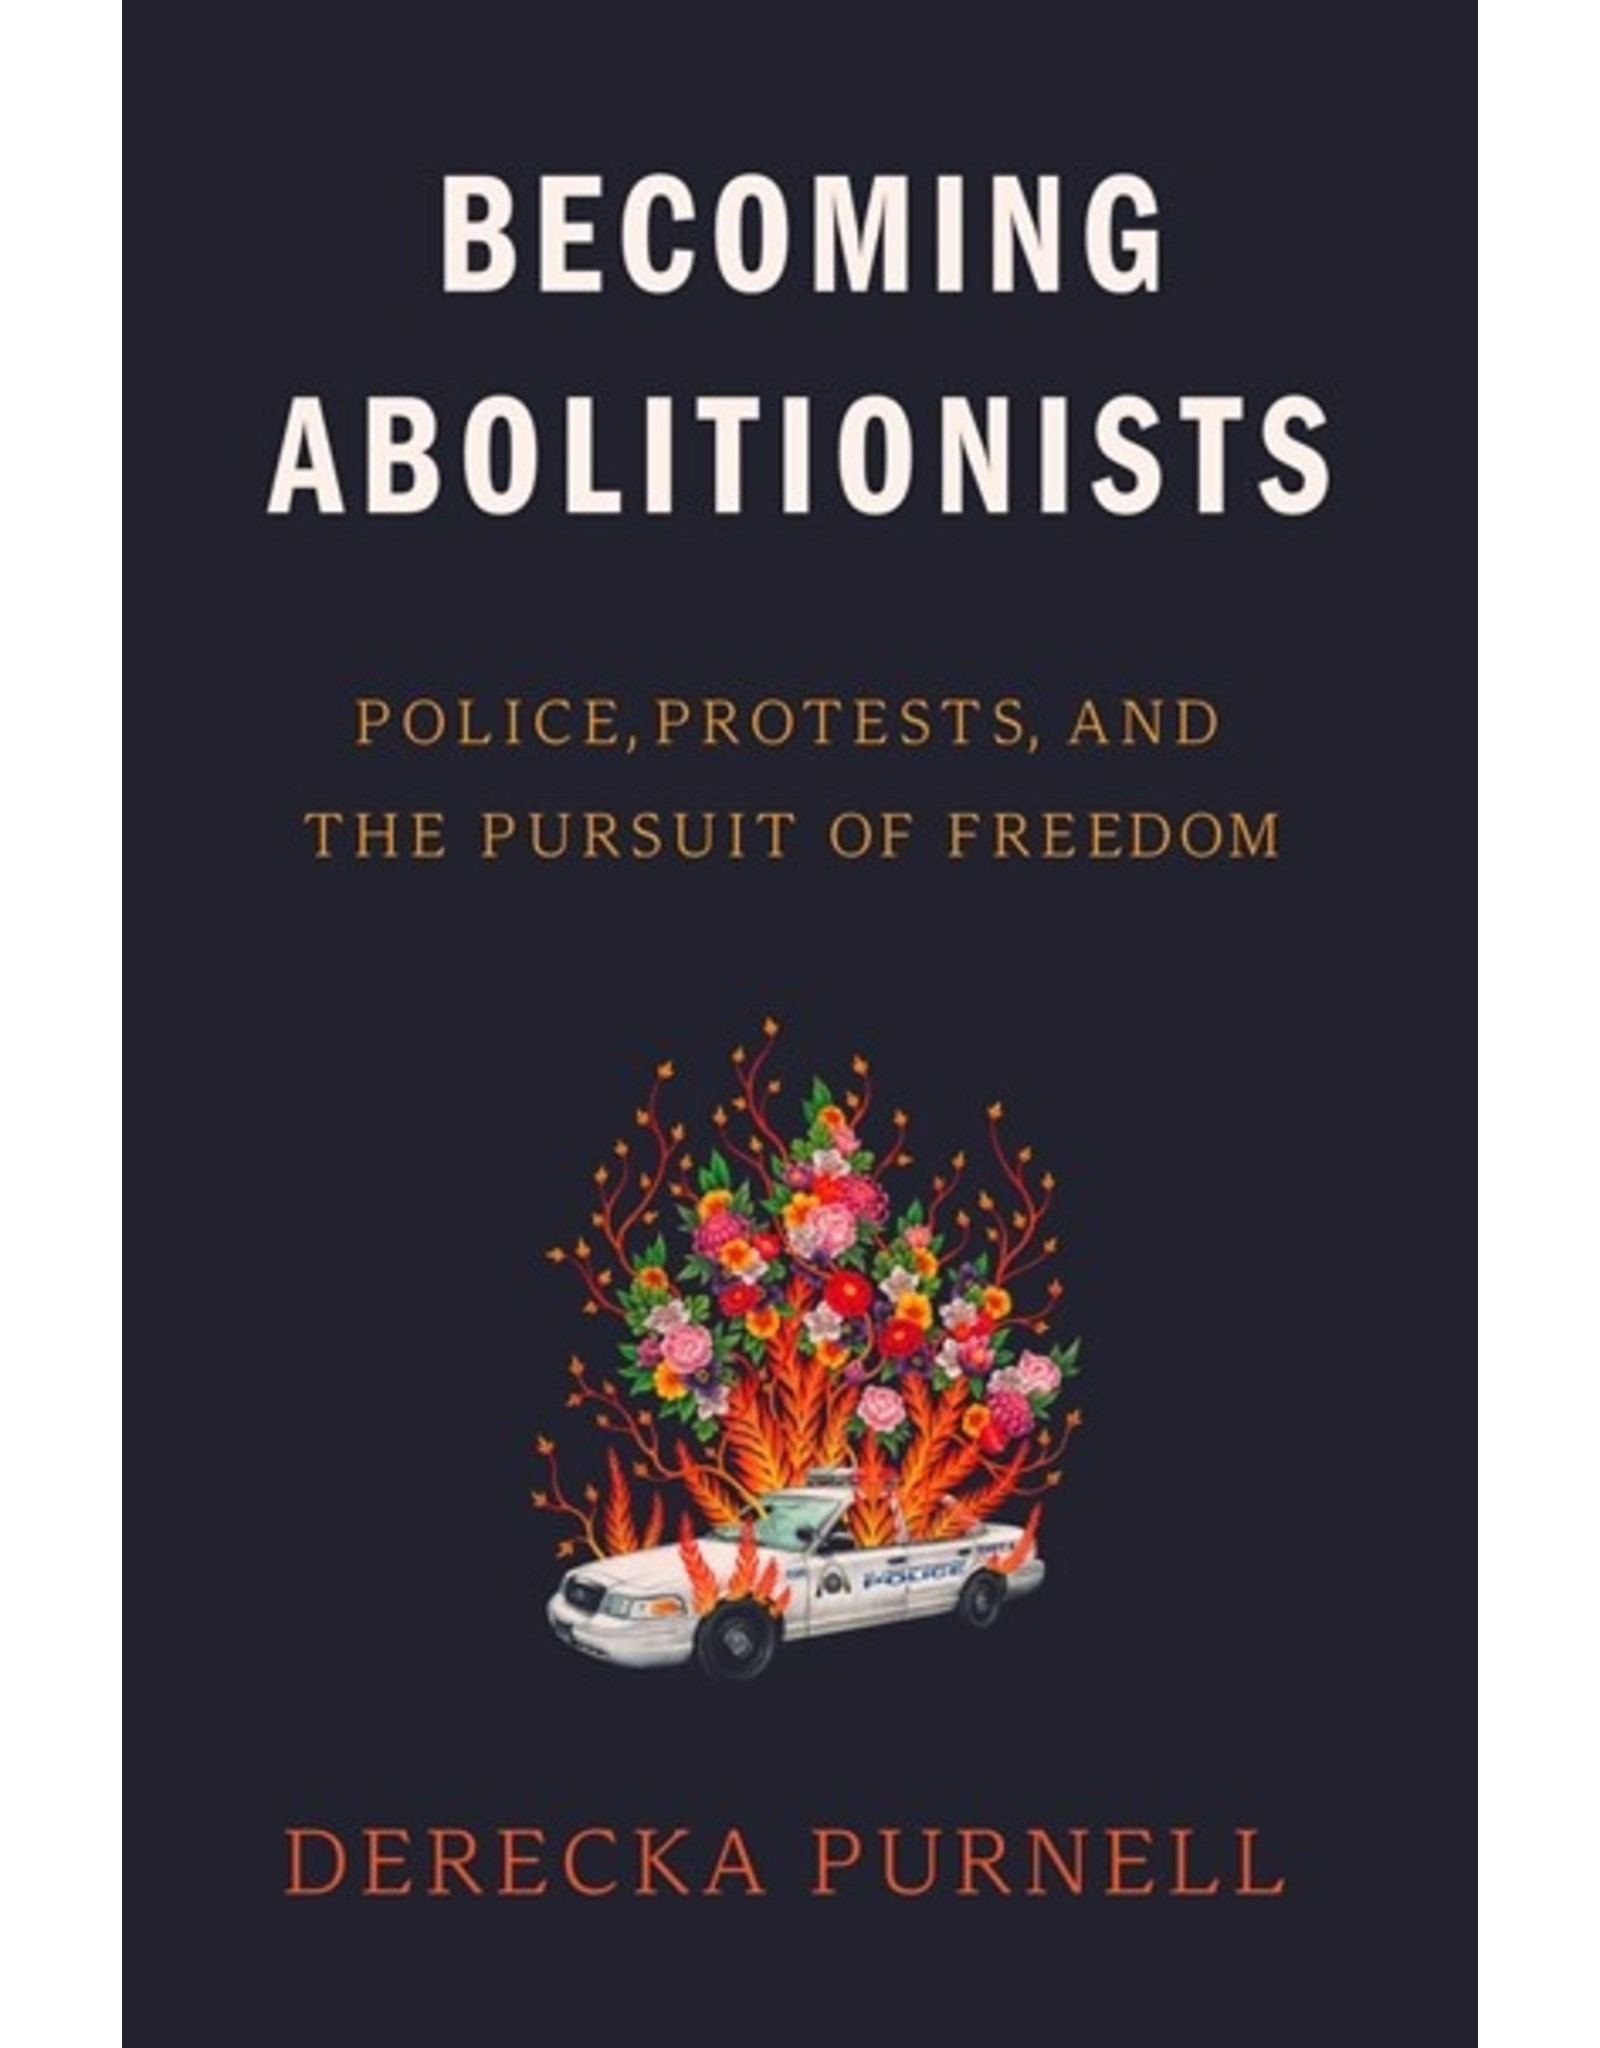 Books Becoming Abolitionists by Derecka Purnell